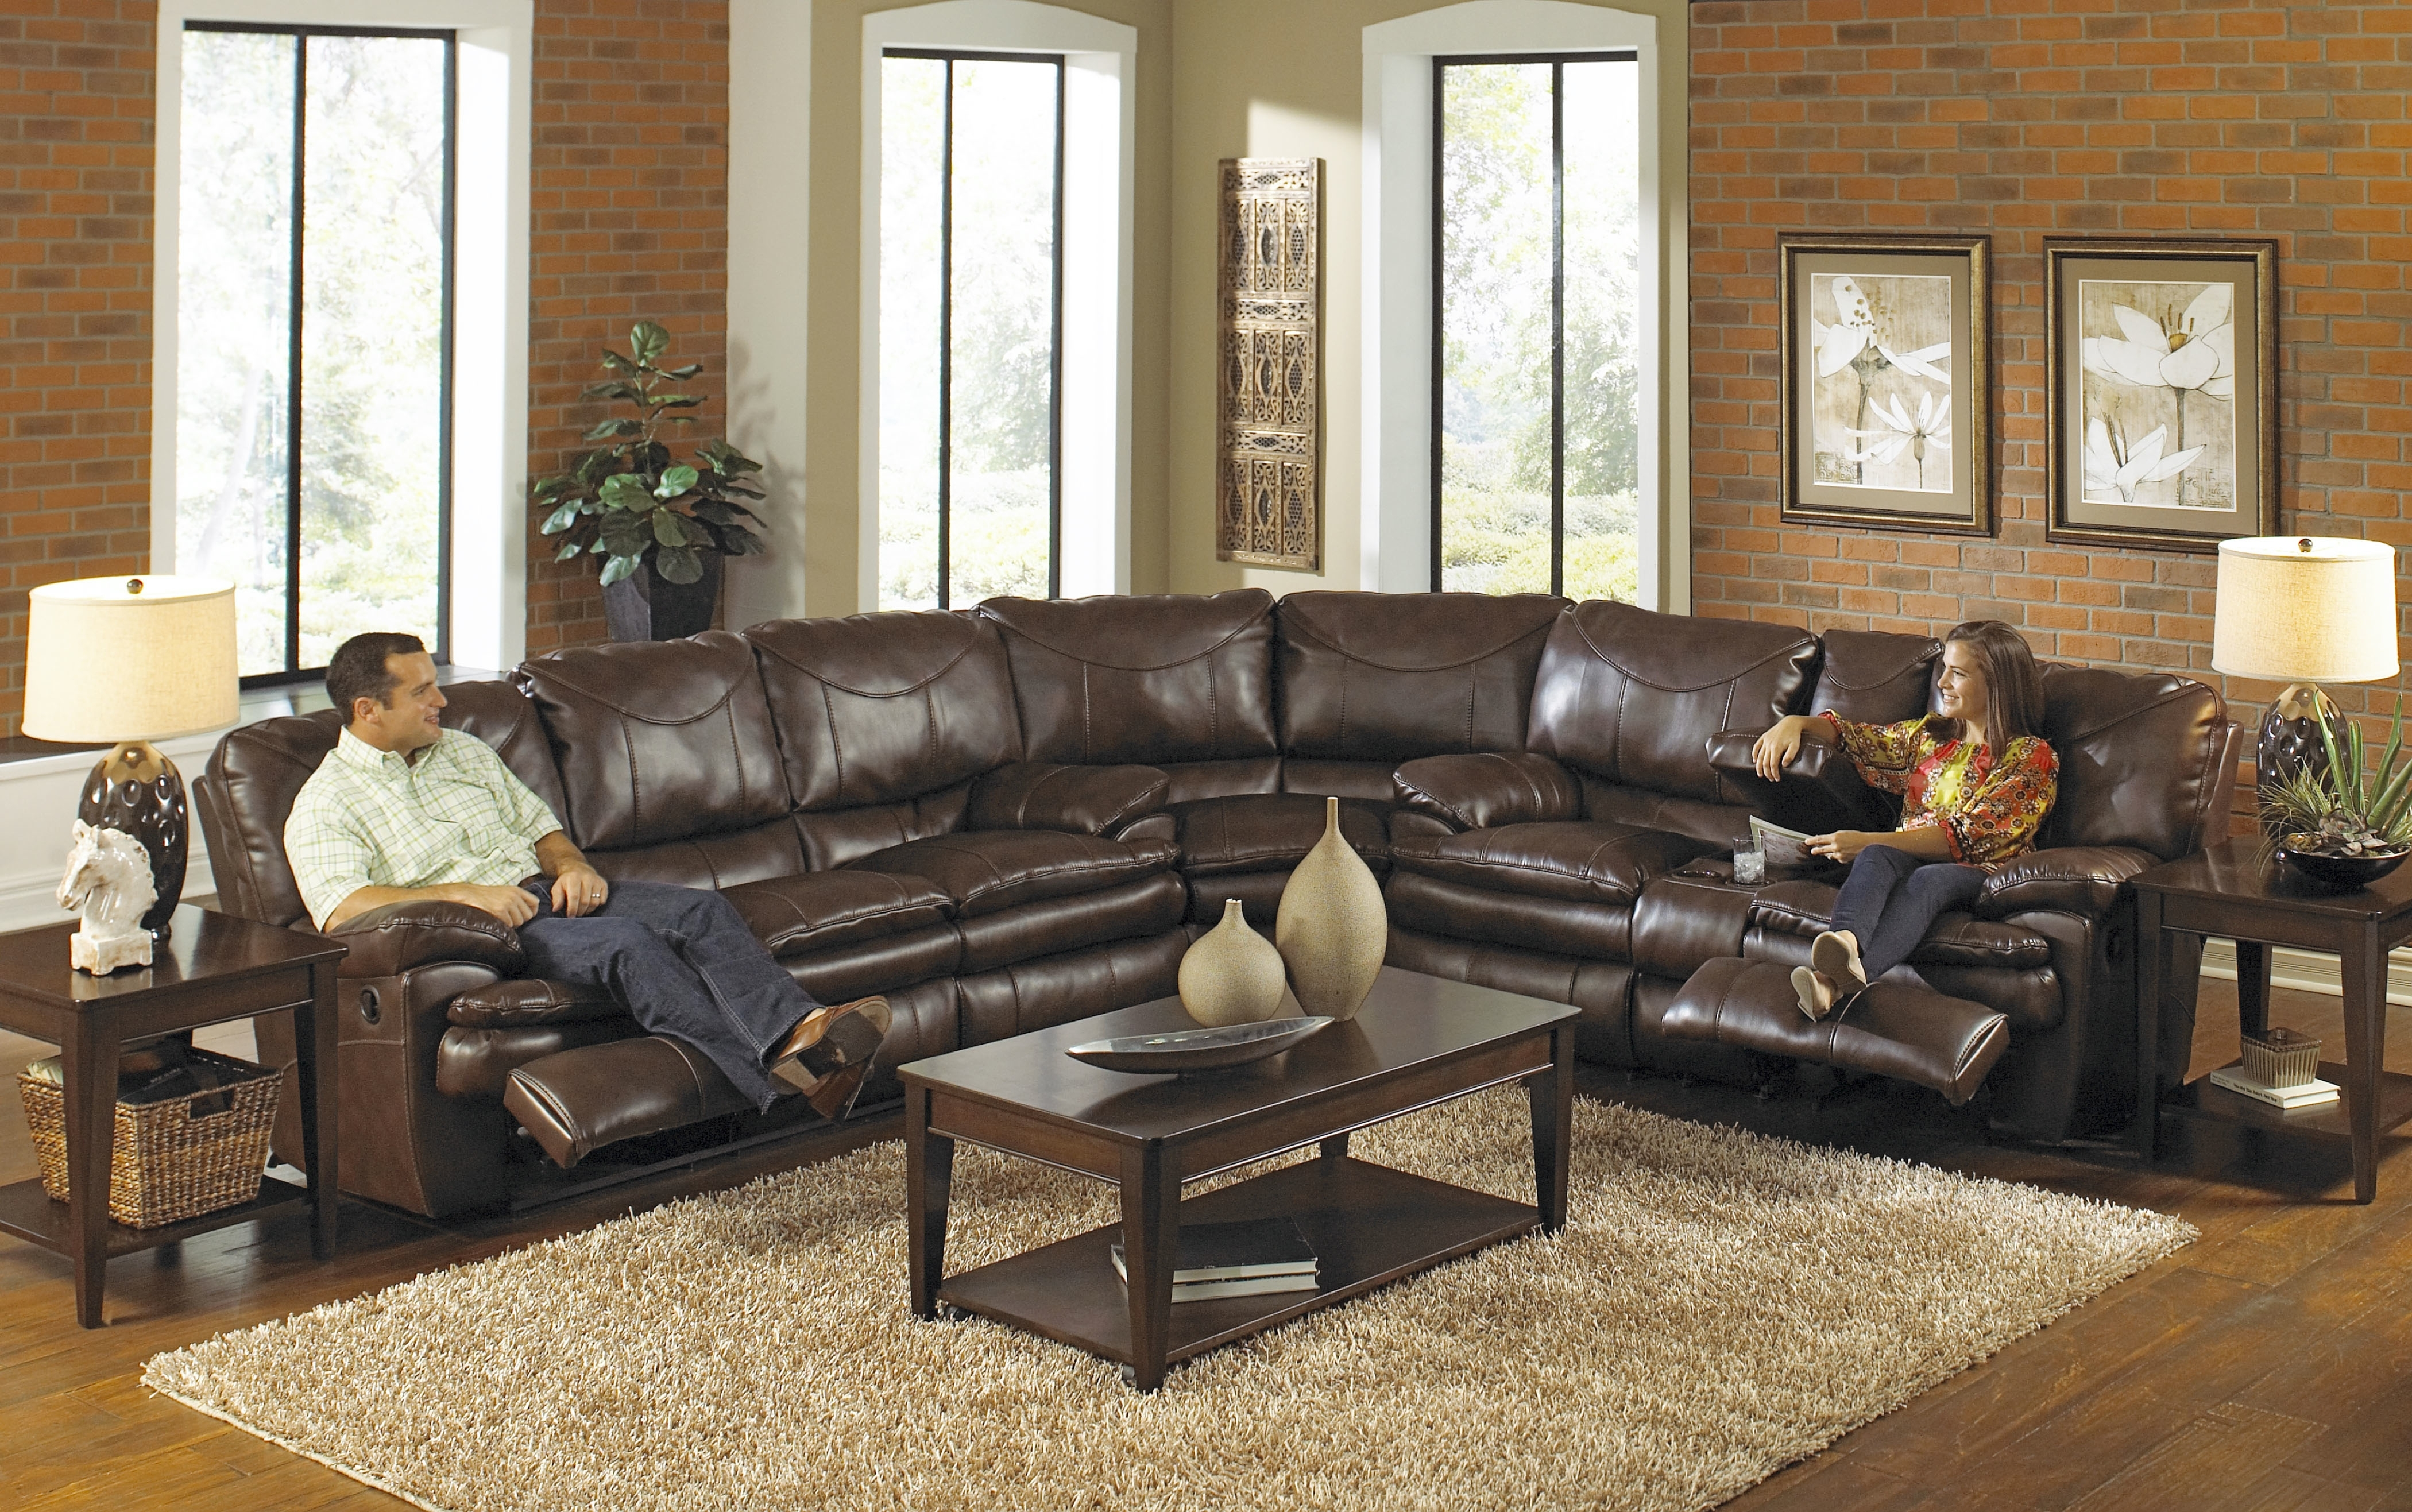 Epic High Quality Sectional Sofa 21 With Additional Modern Sofa Inside Good Quality Sectional Sofas (Photo 5 of 10)